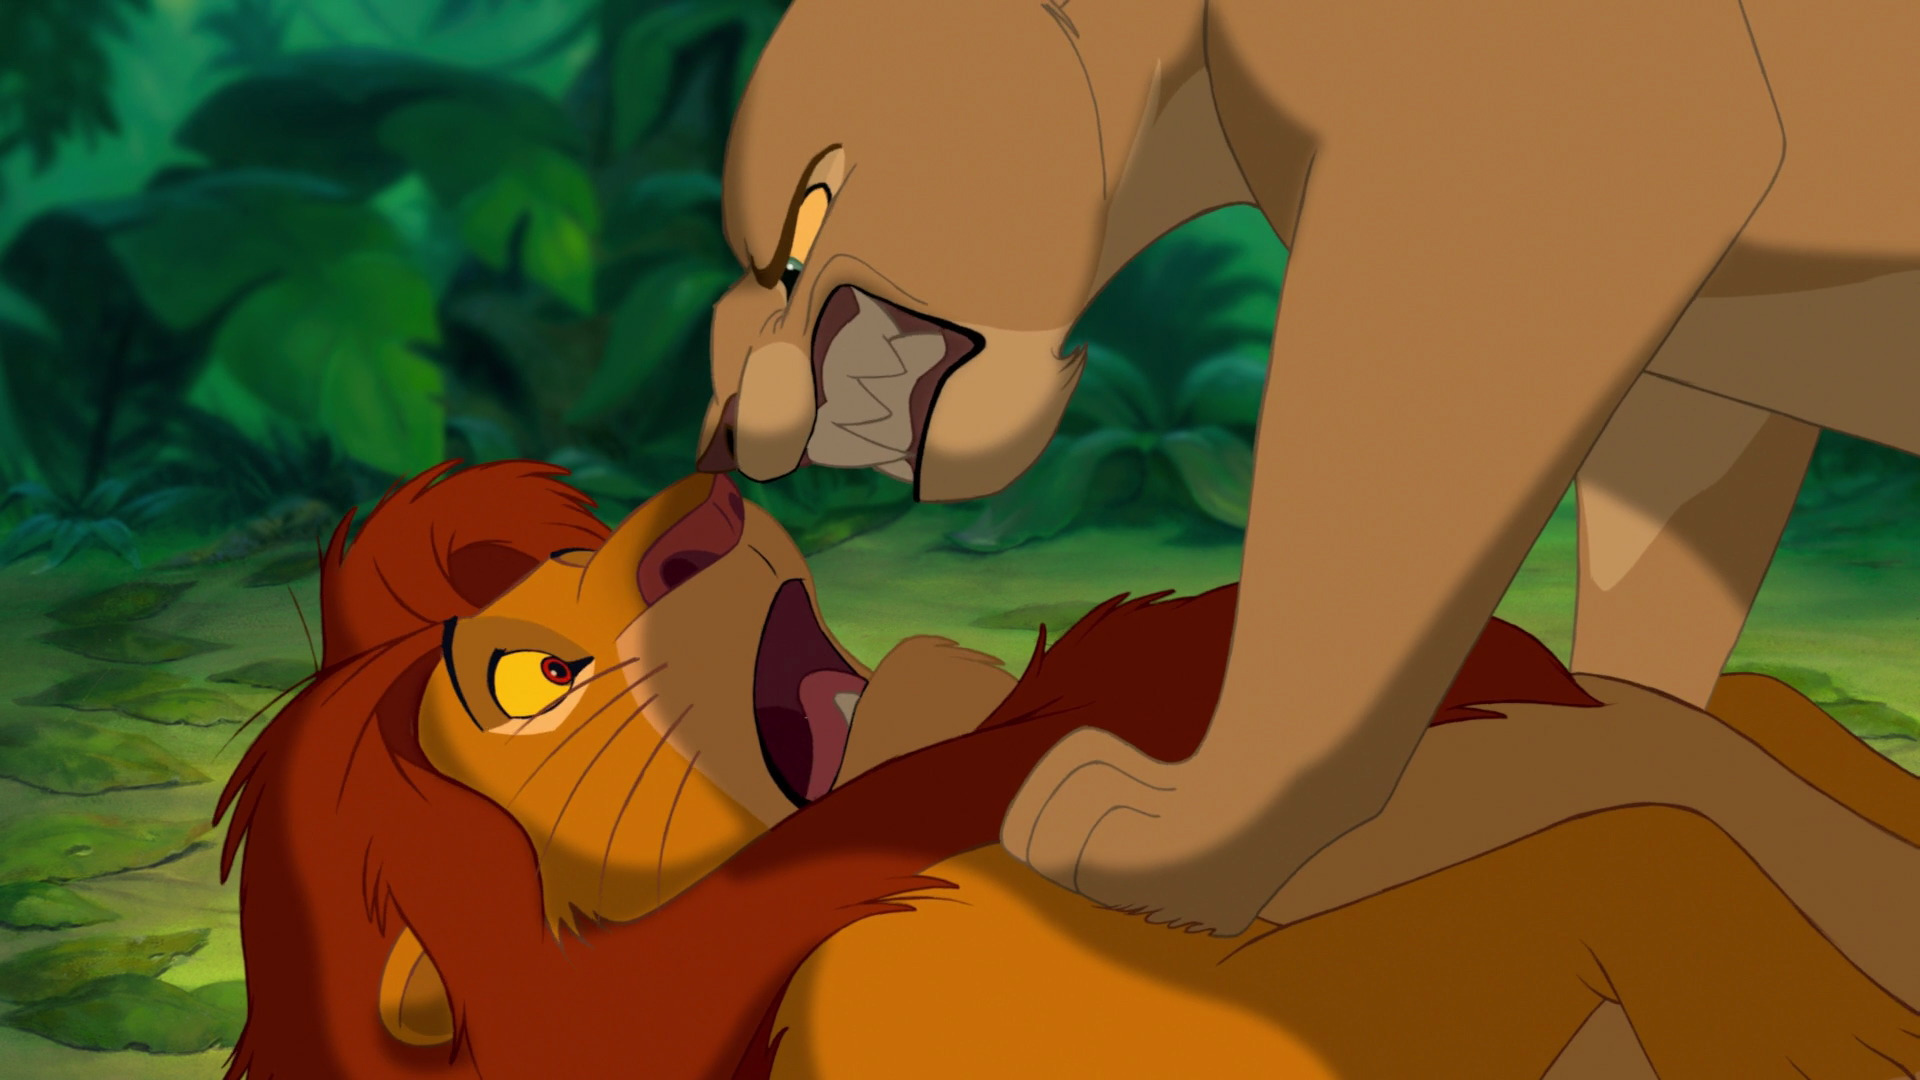 The Lion King Nala Simba - Grown Up Simba And Nala , HD Wallpaper & Backgrounds